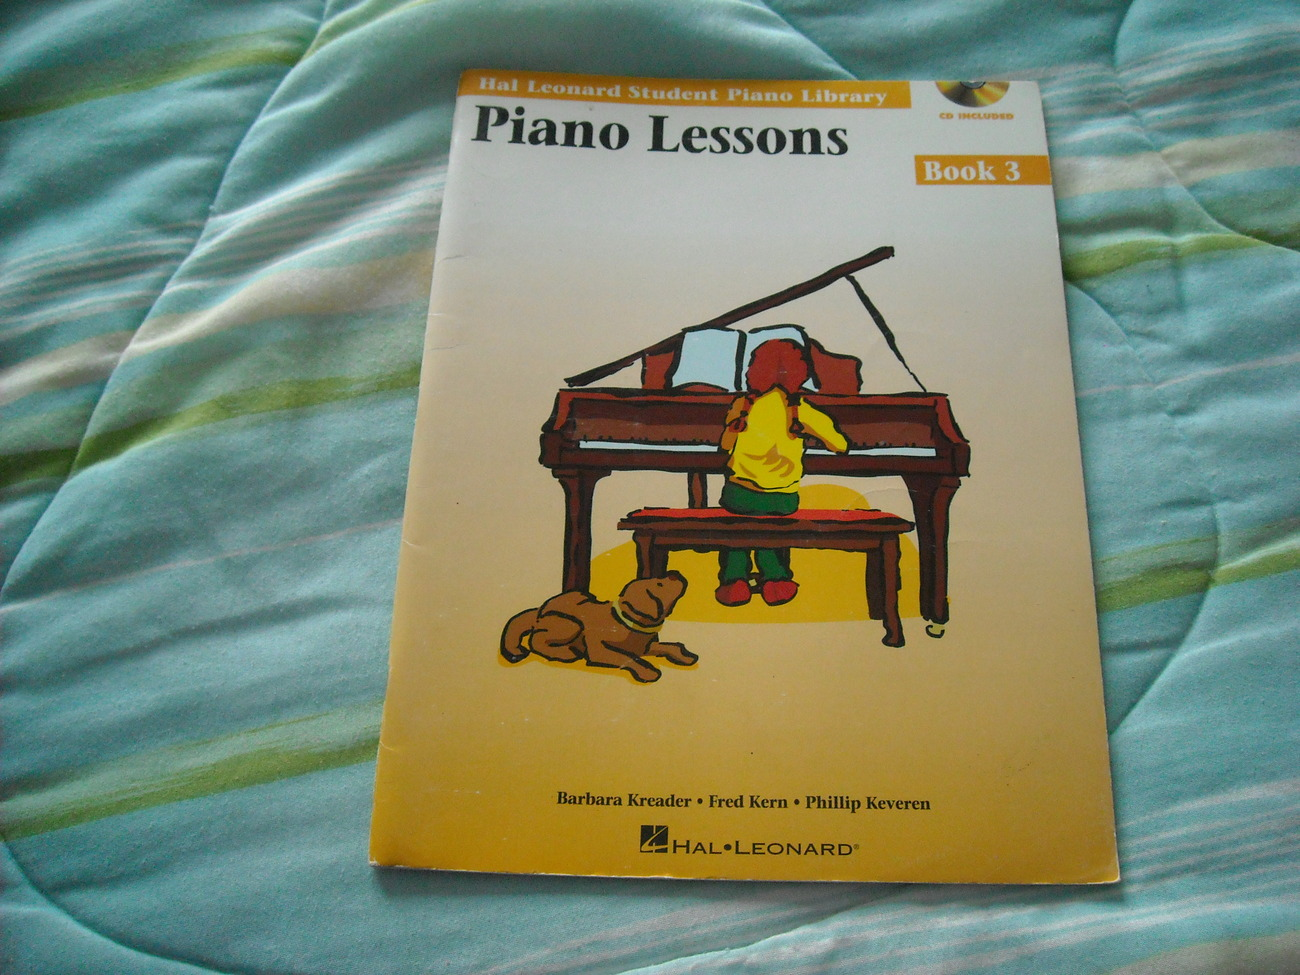 Piano lessons book 3